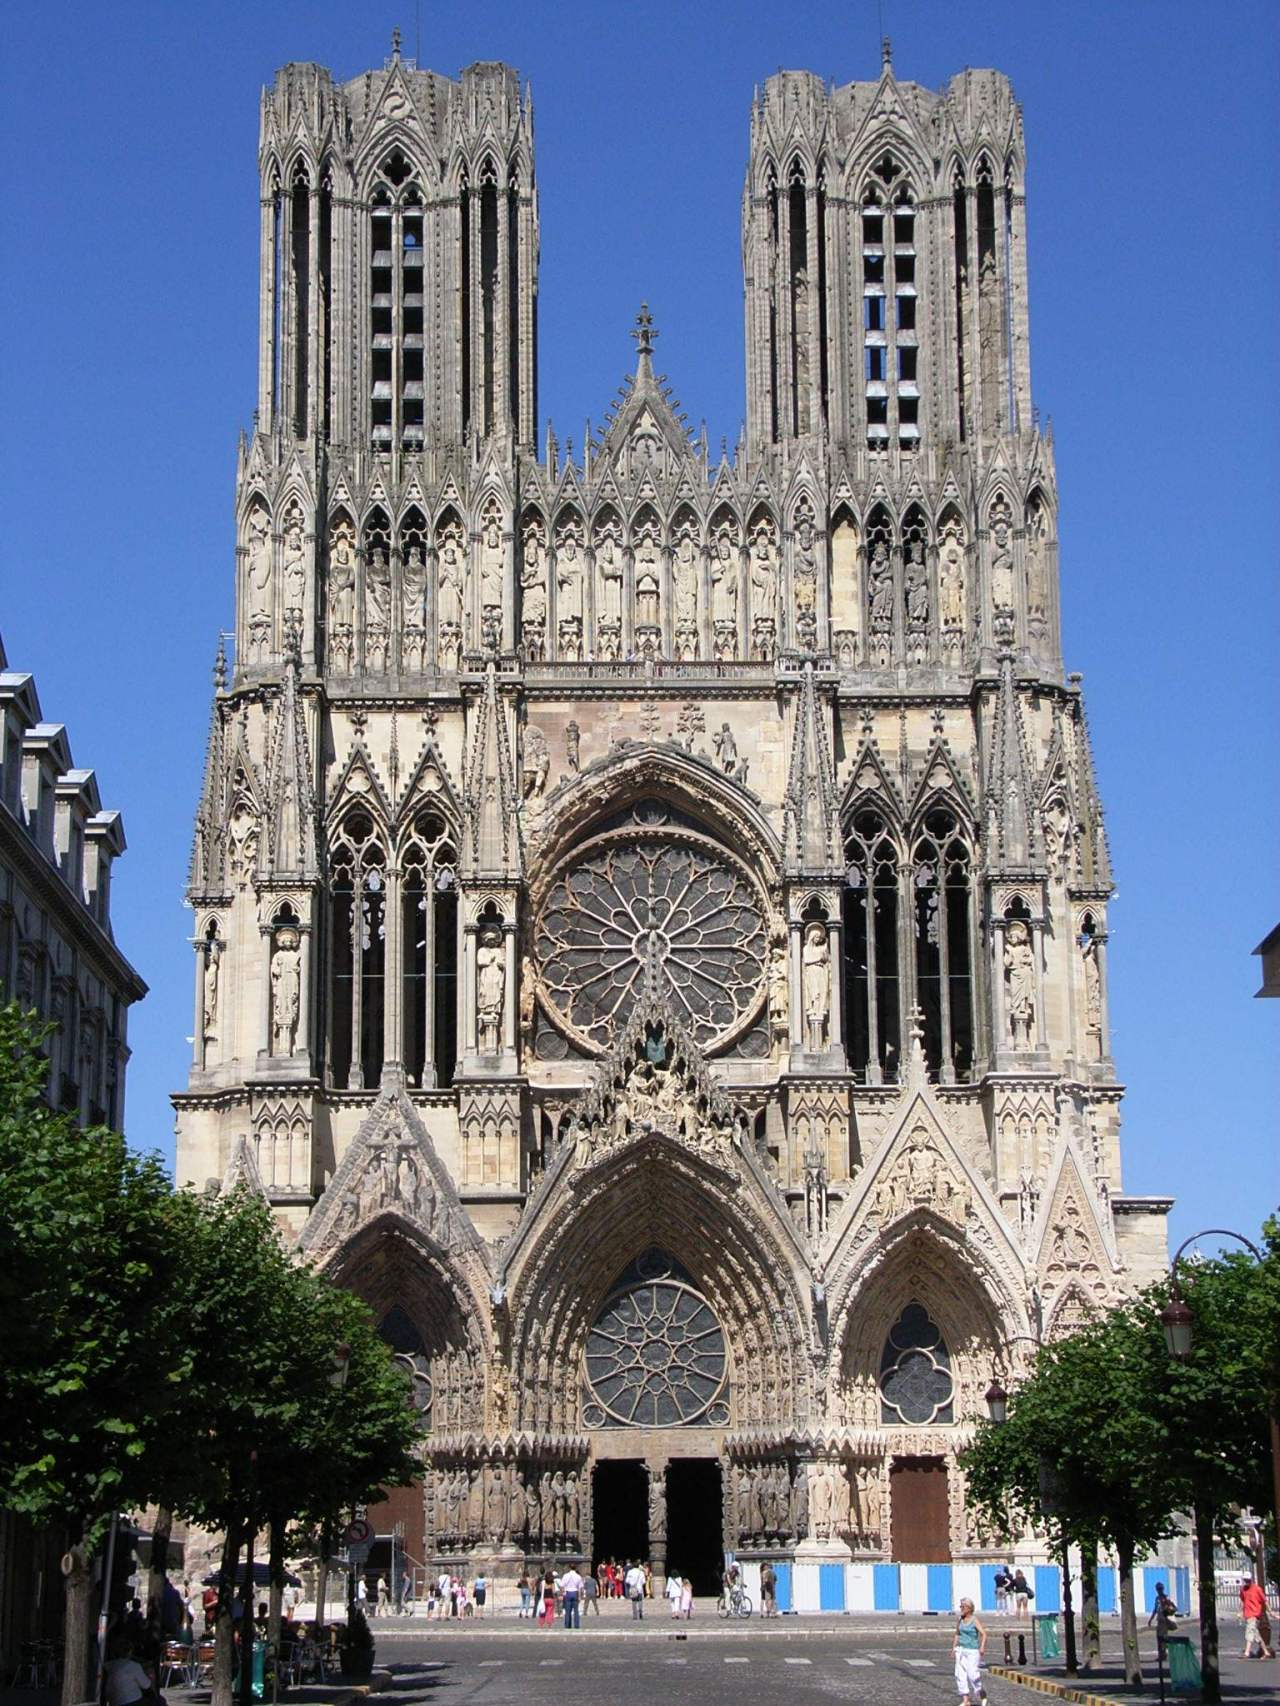 Façade of Reims Cathedral, France